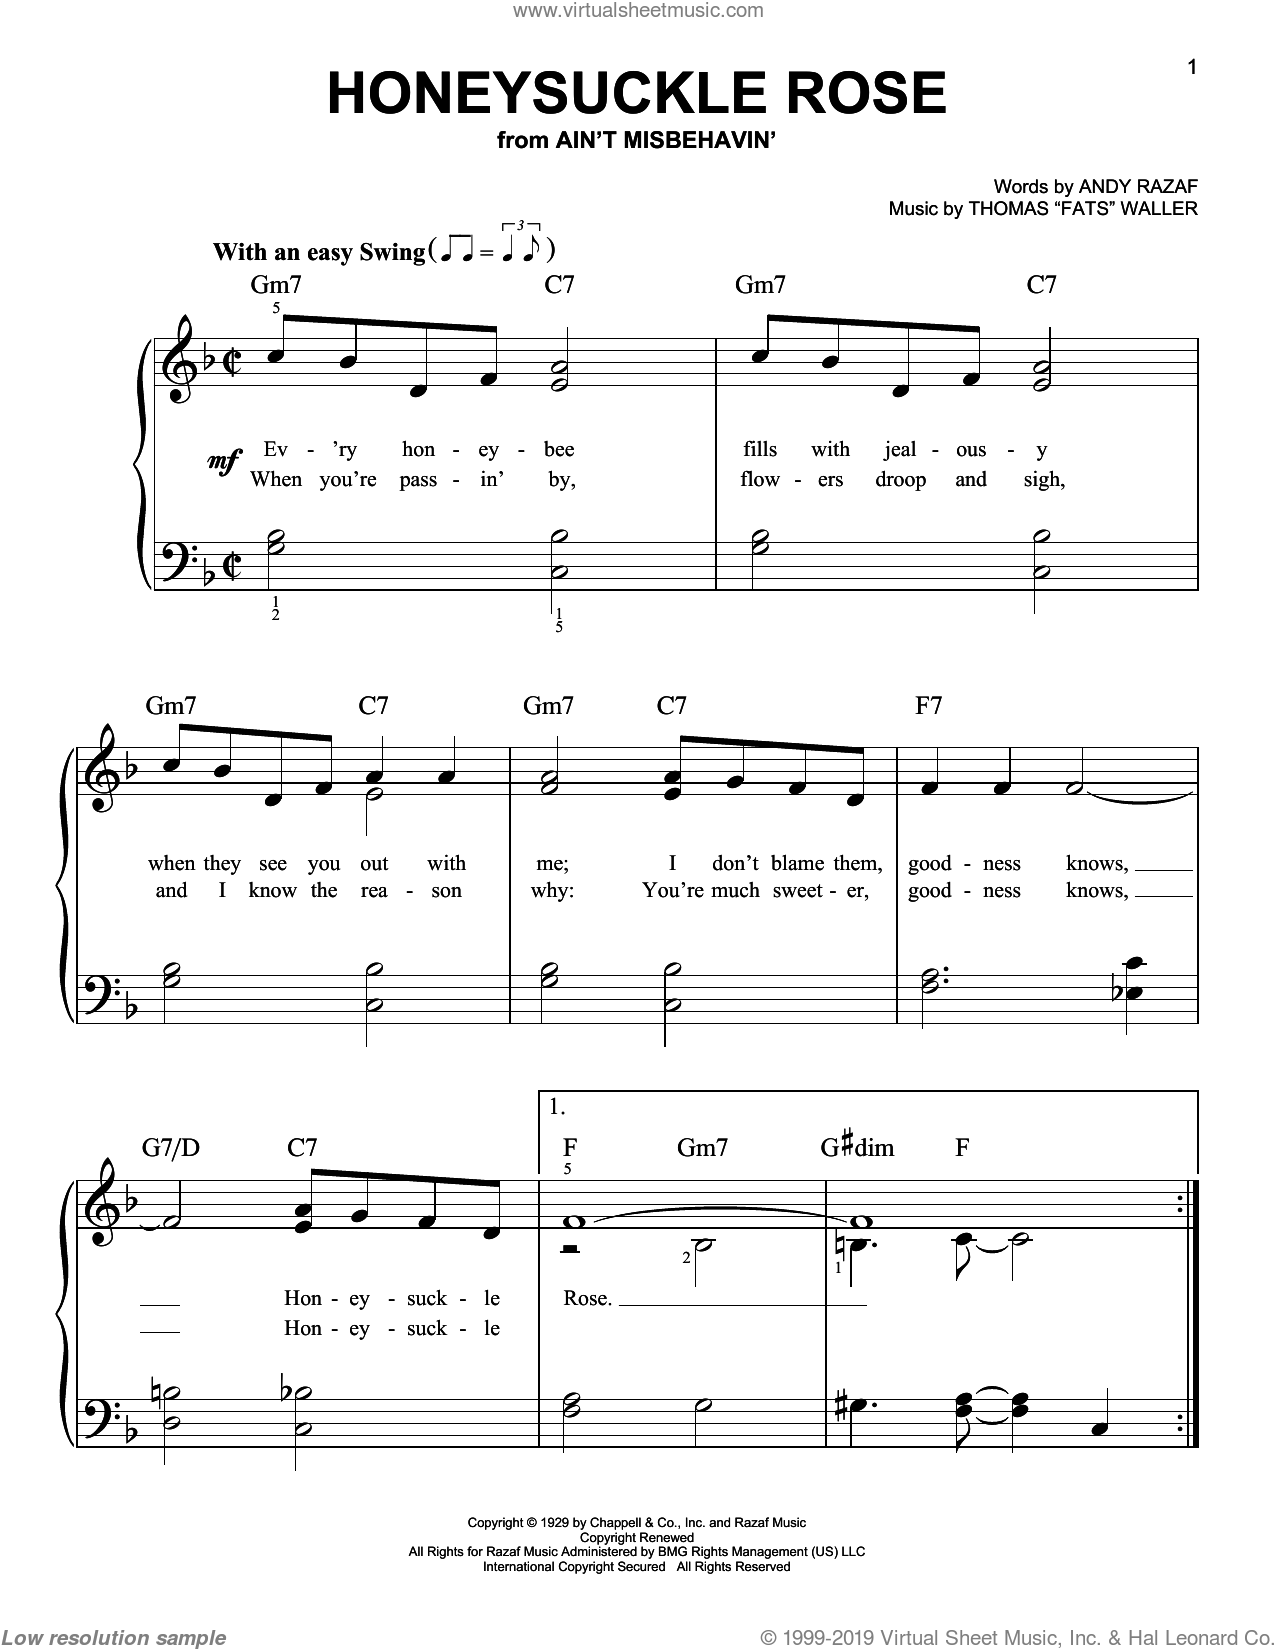 Honeysuckle Rose sheet music for piano solo by Thomas Waller